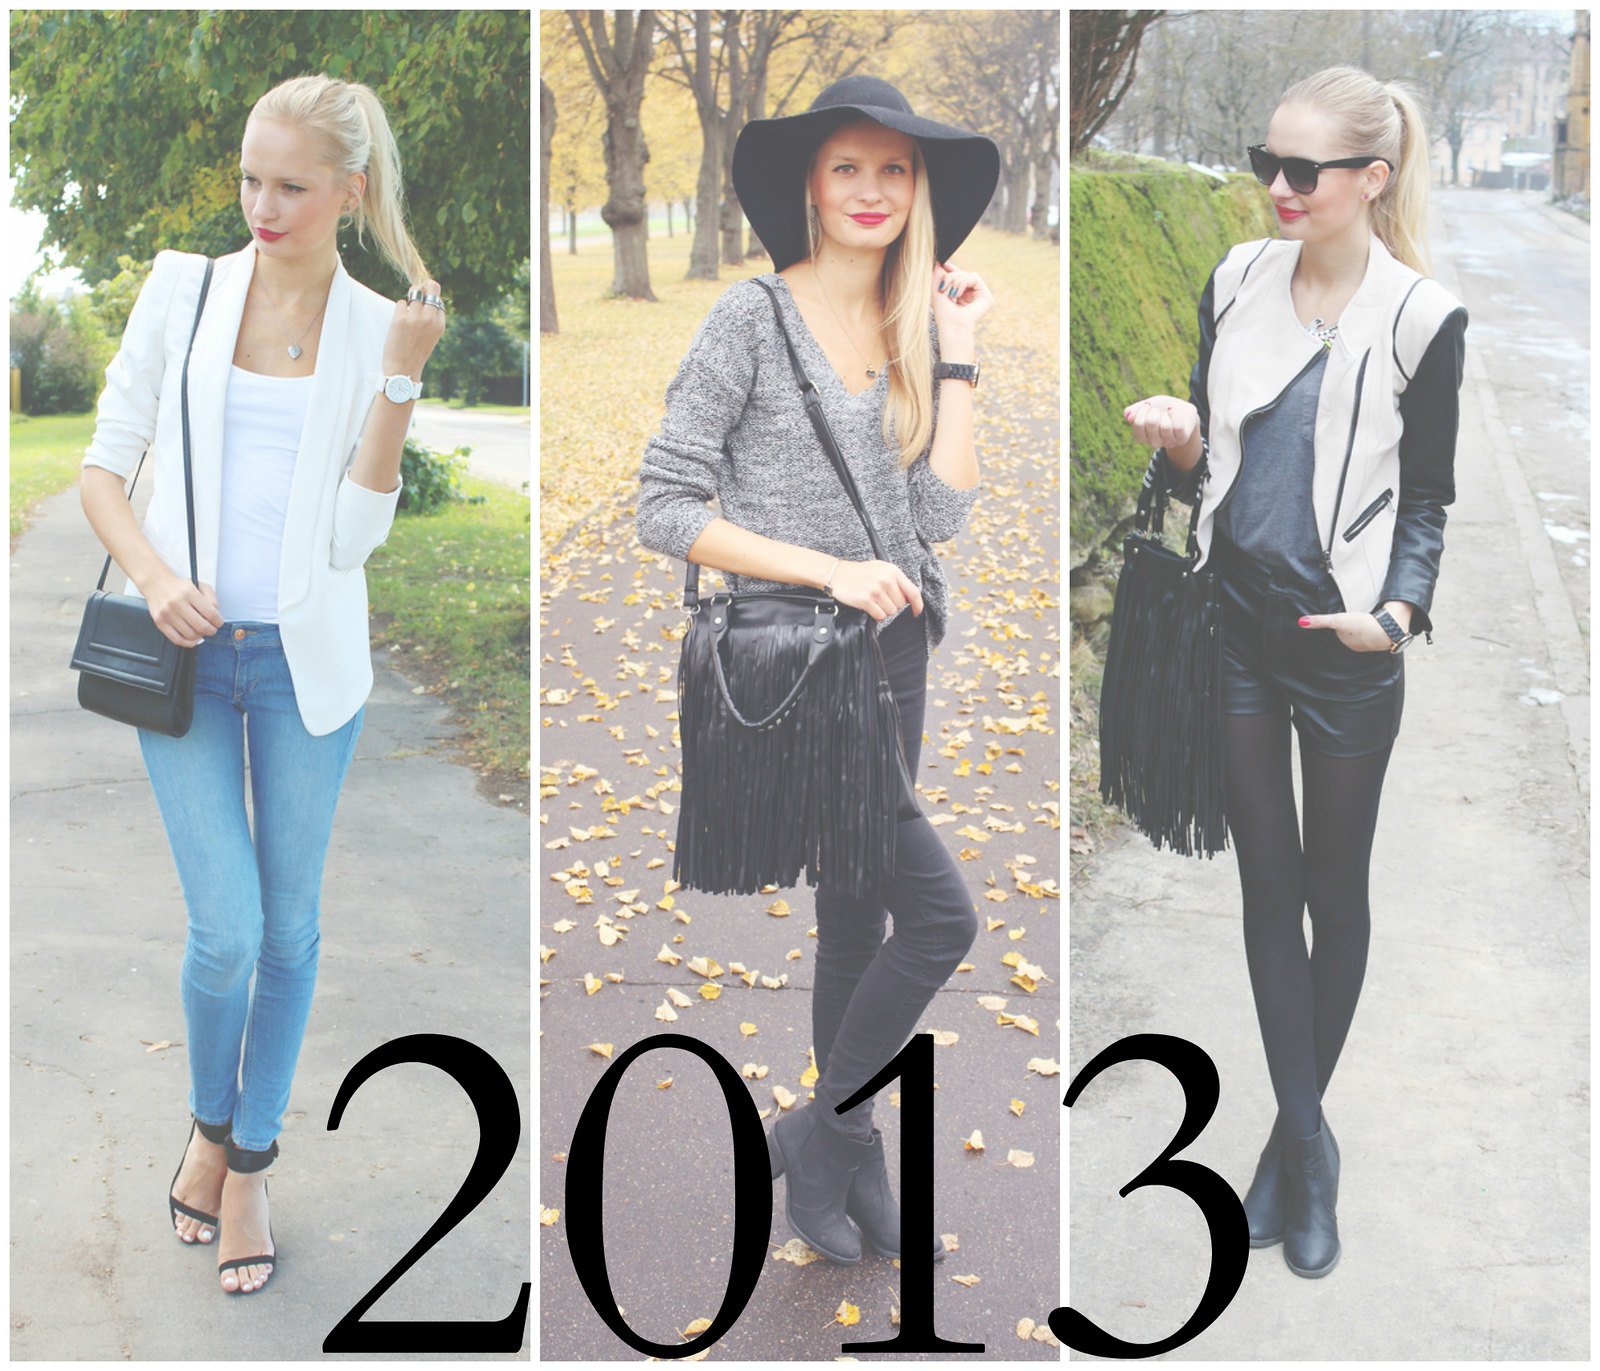 2013 outfits